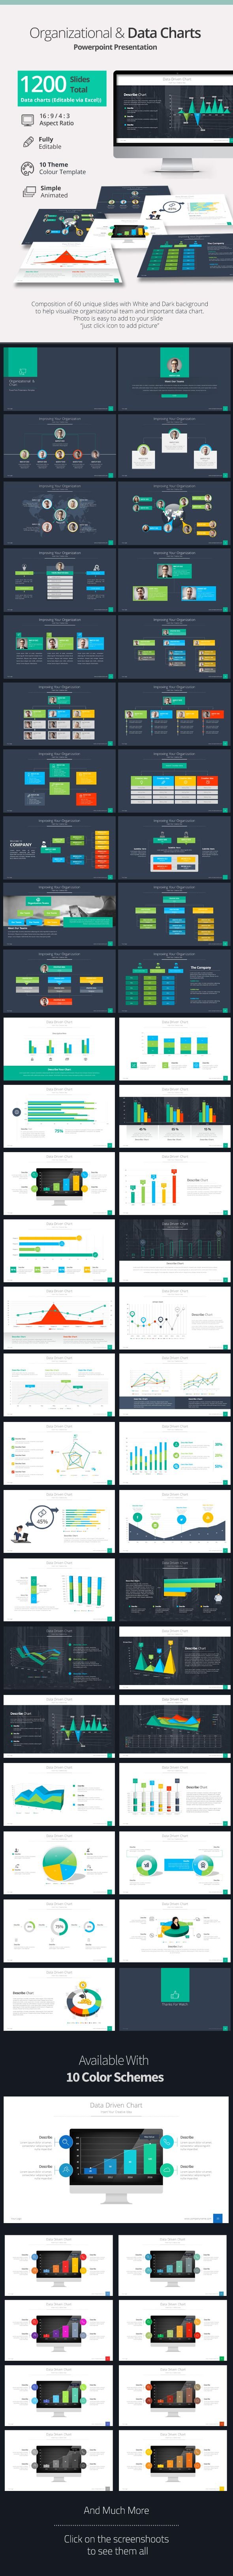 Organizational & Data Chart Presentation PowerPoint Template #slides #design Download: http://graphicriver.net/item/organizational-data-chart-presentation/13649727?ref=ksioks